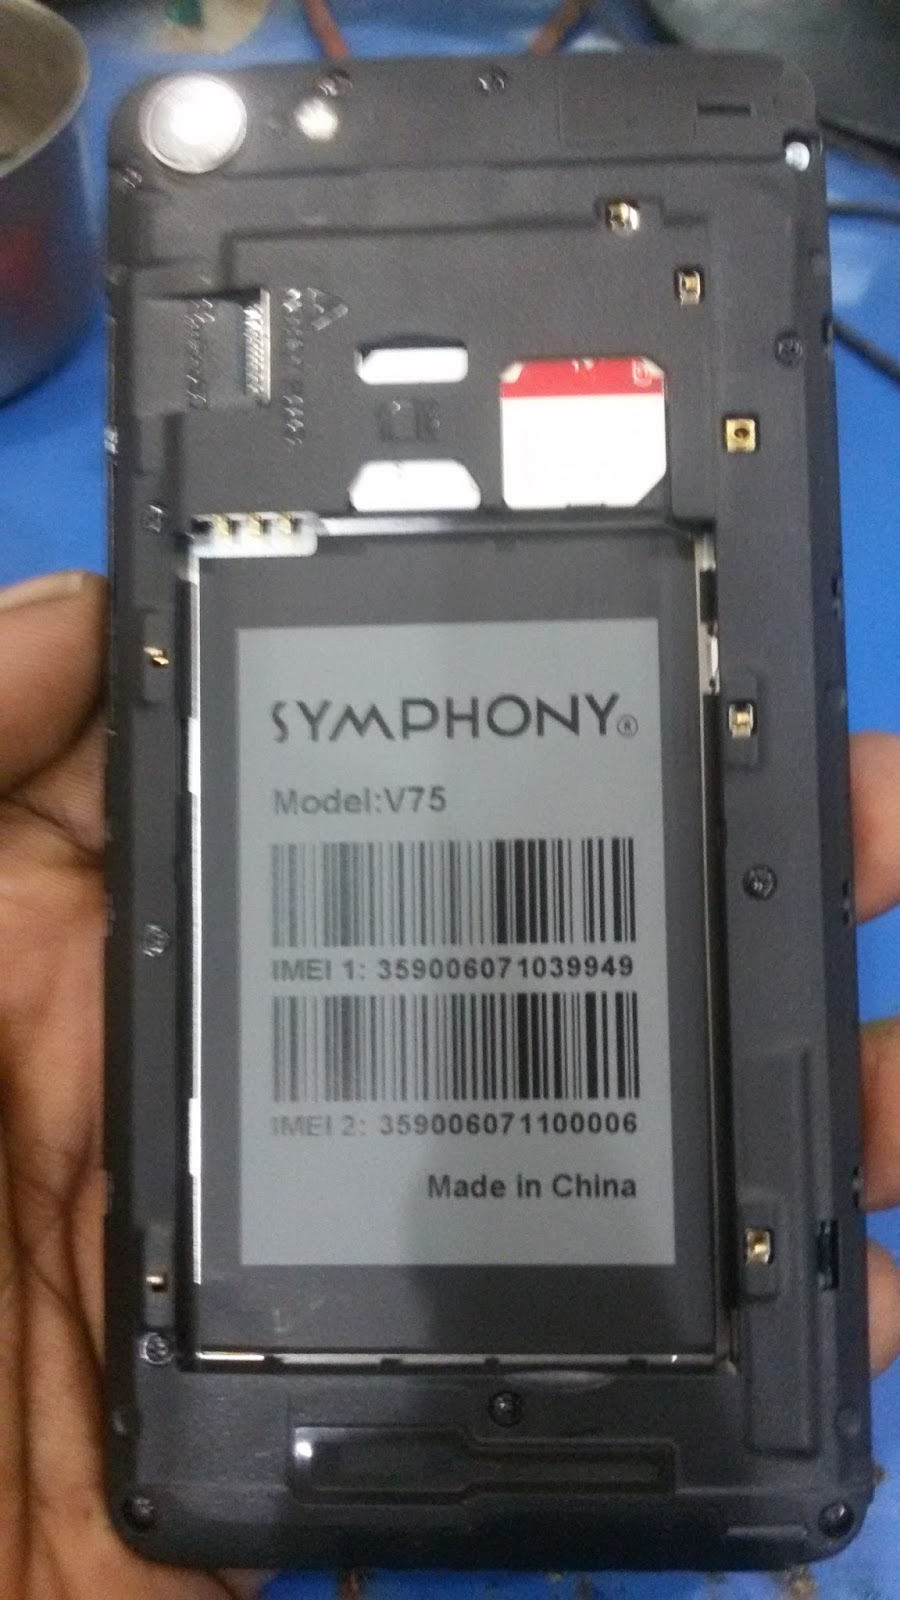 SYMPHONY V75 DEAD RECOVERY FIRMWARE 100% TESTED BY GSM_ramim